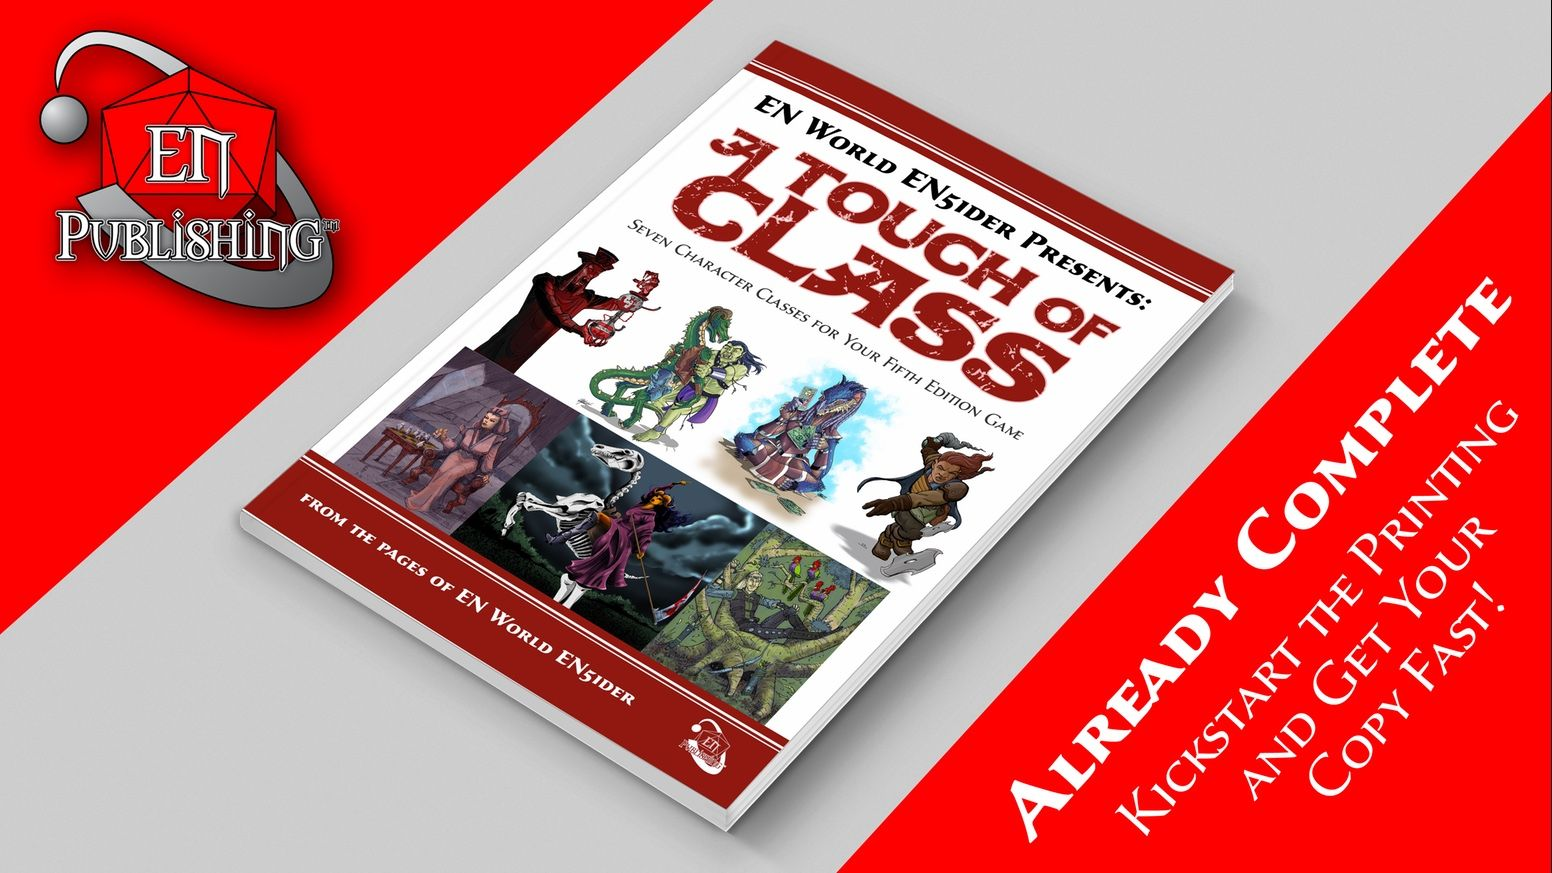 Meet the full alchemist, cardcaster, diabolist, feywalker, morph, noble, and occultist classes for your 5E games in this 70-page book!